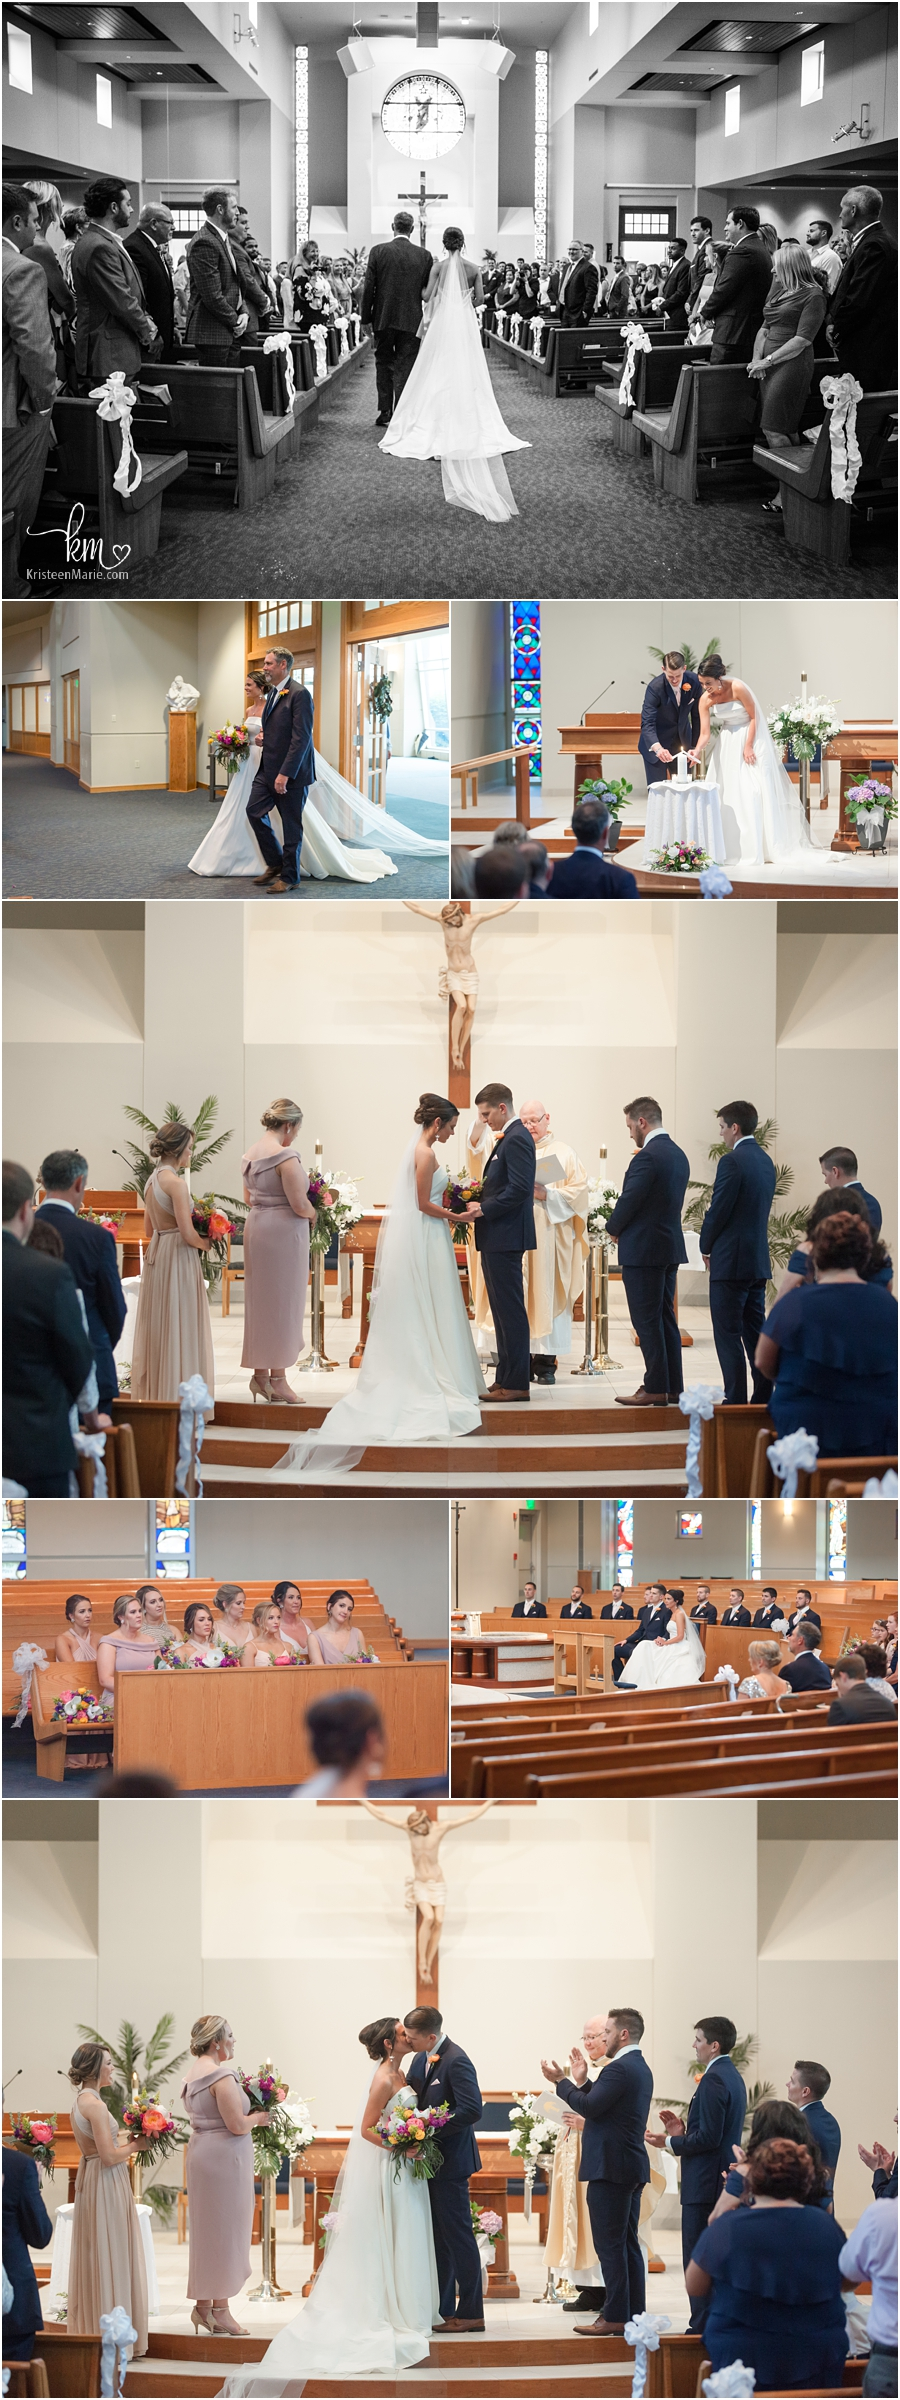 Wedding at St. Simon the Apostle Church